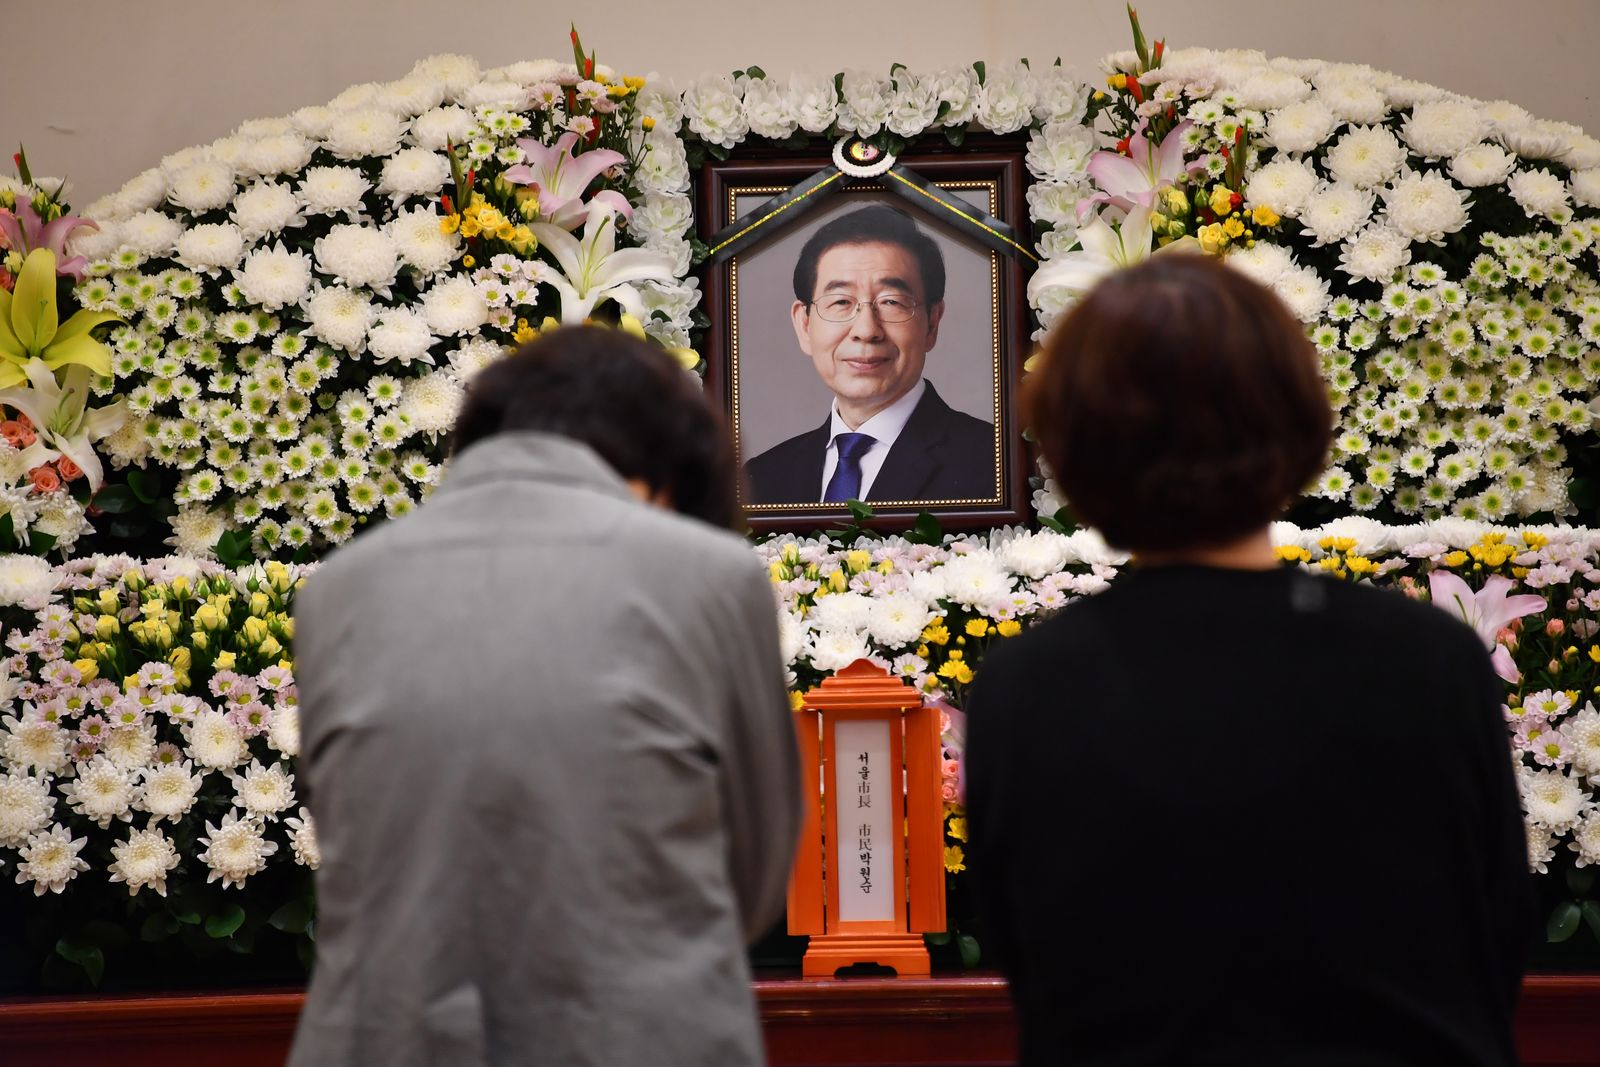 Seoul's Mayor Park Won-soon Found Dead After Reported Missing